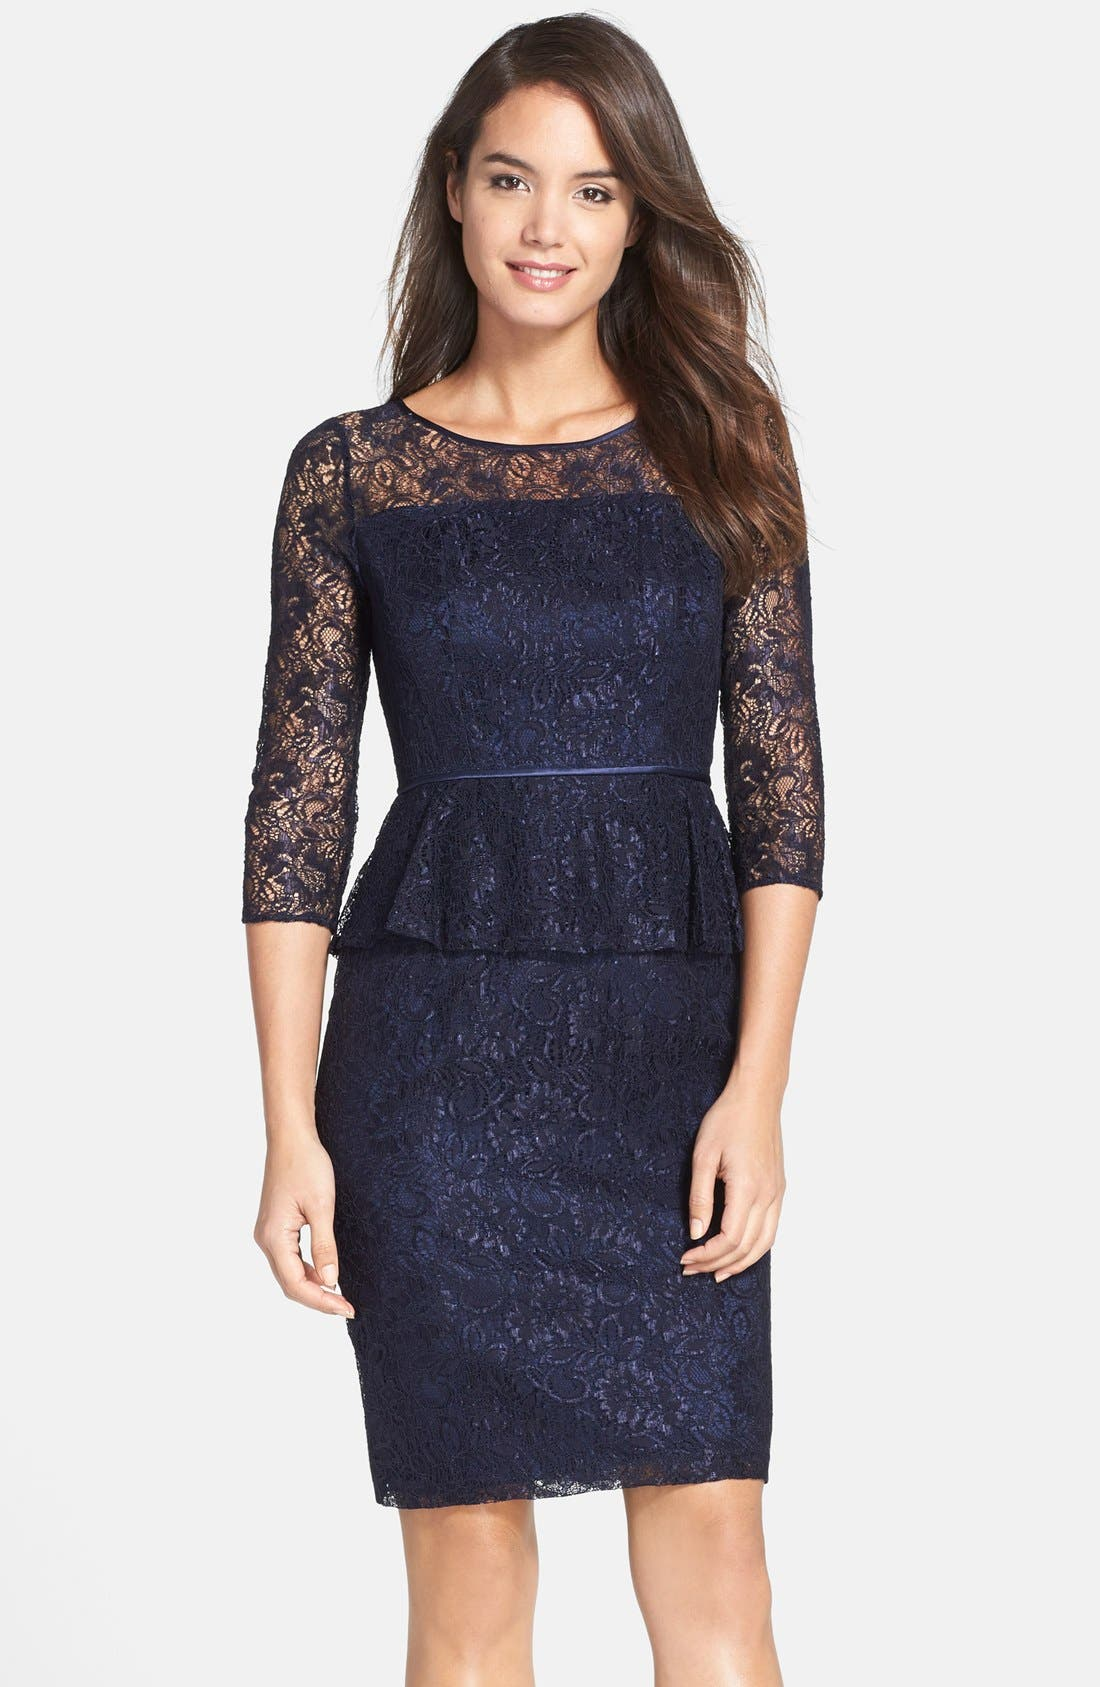 Alternate Image 1 Selected - Adrianna Papell Peplum Lace Sheath Dress (Nordstrom Exclusive)